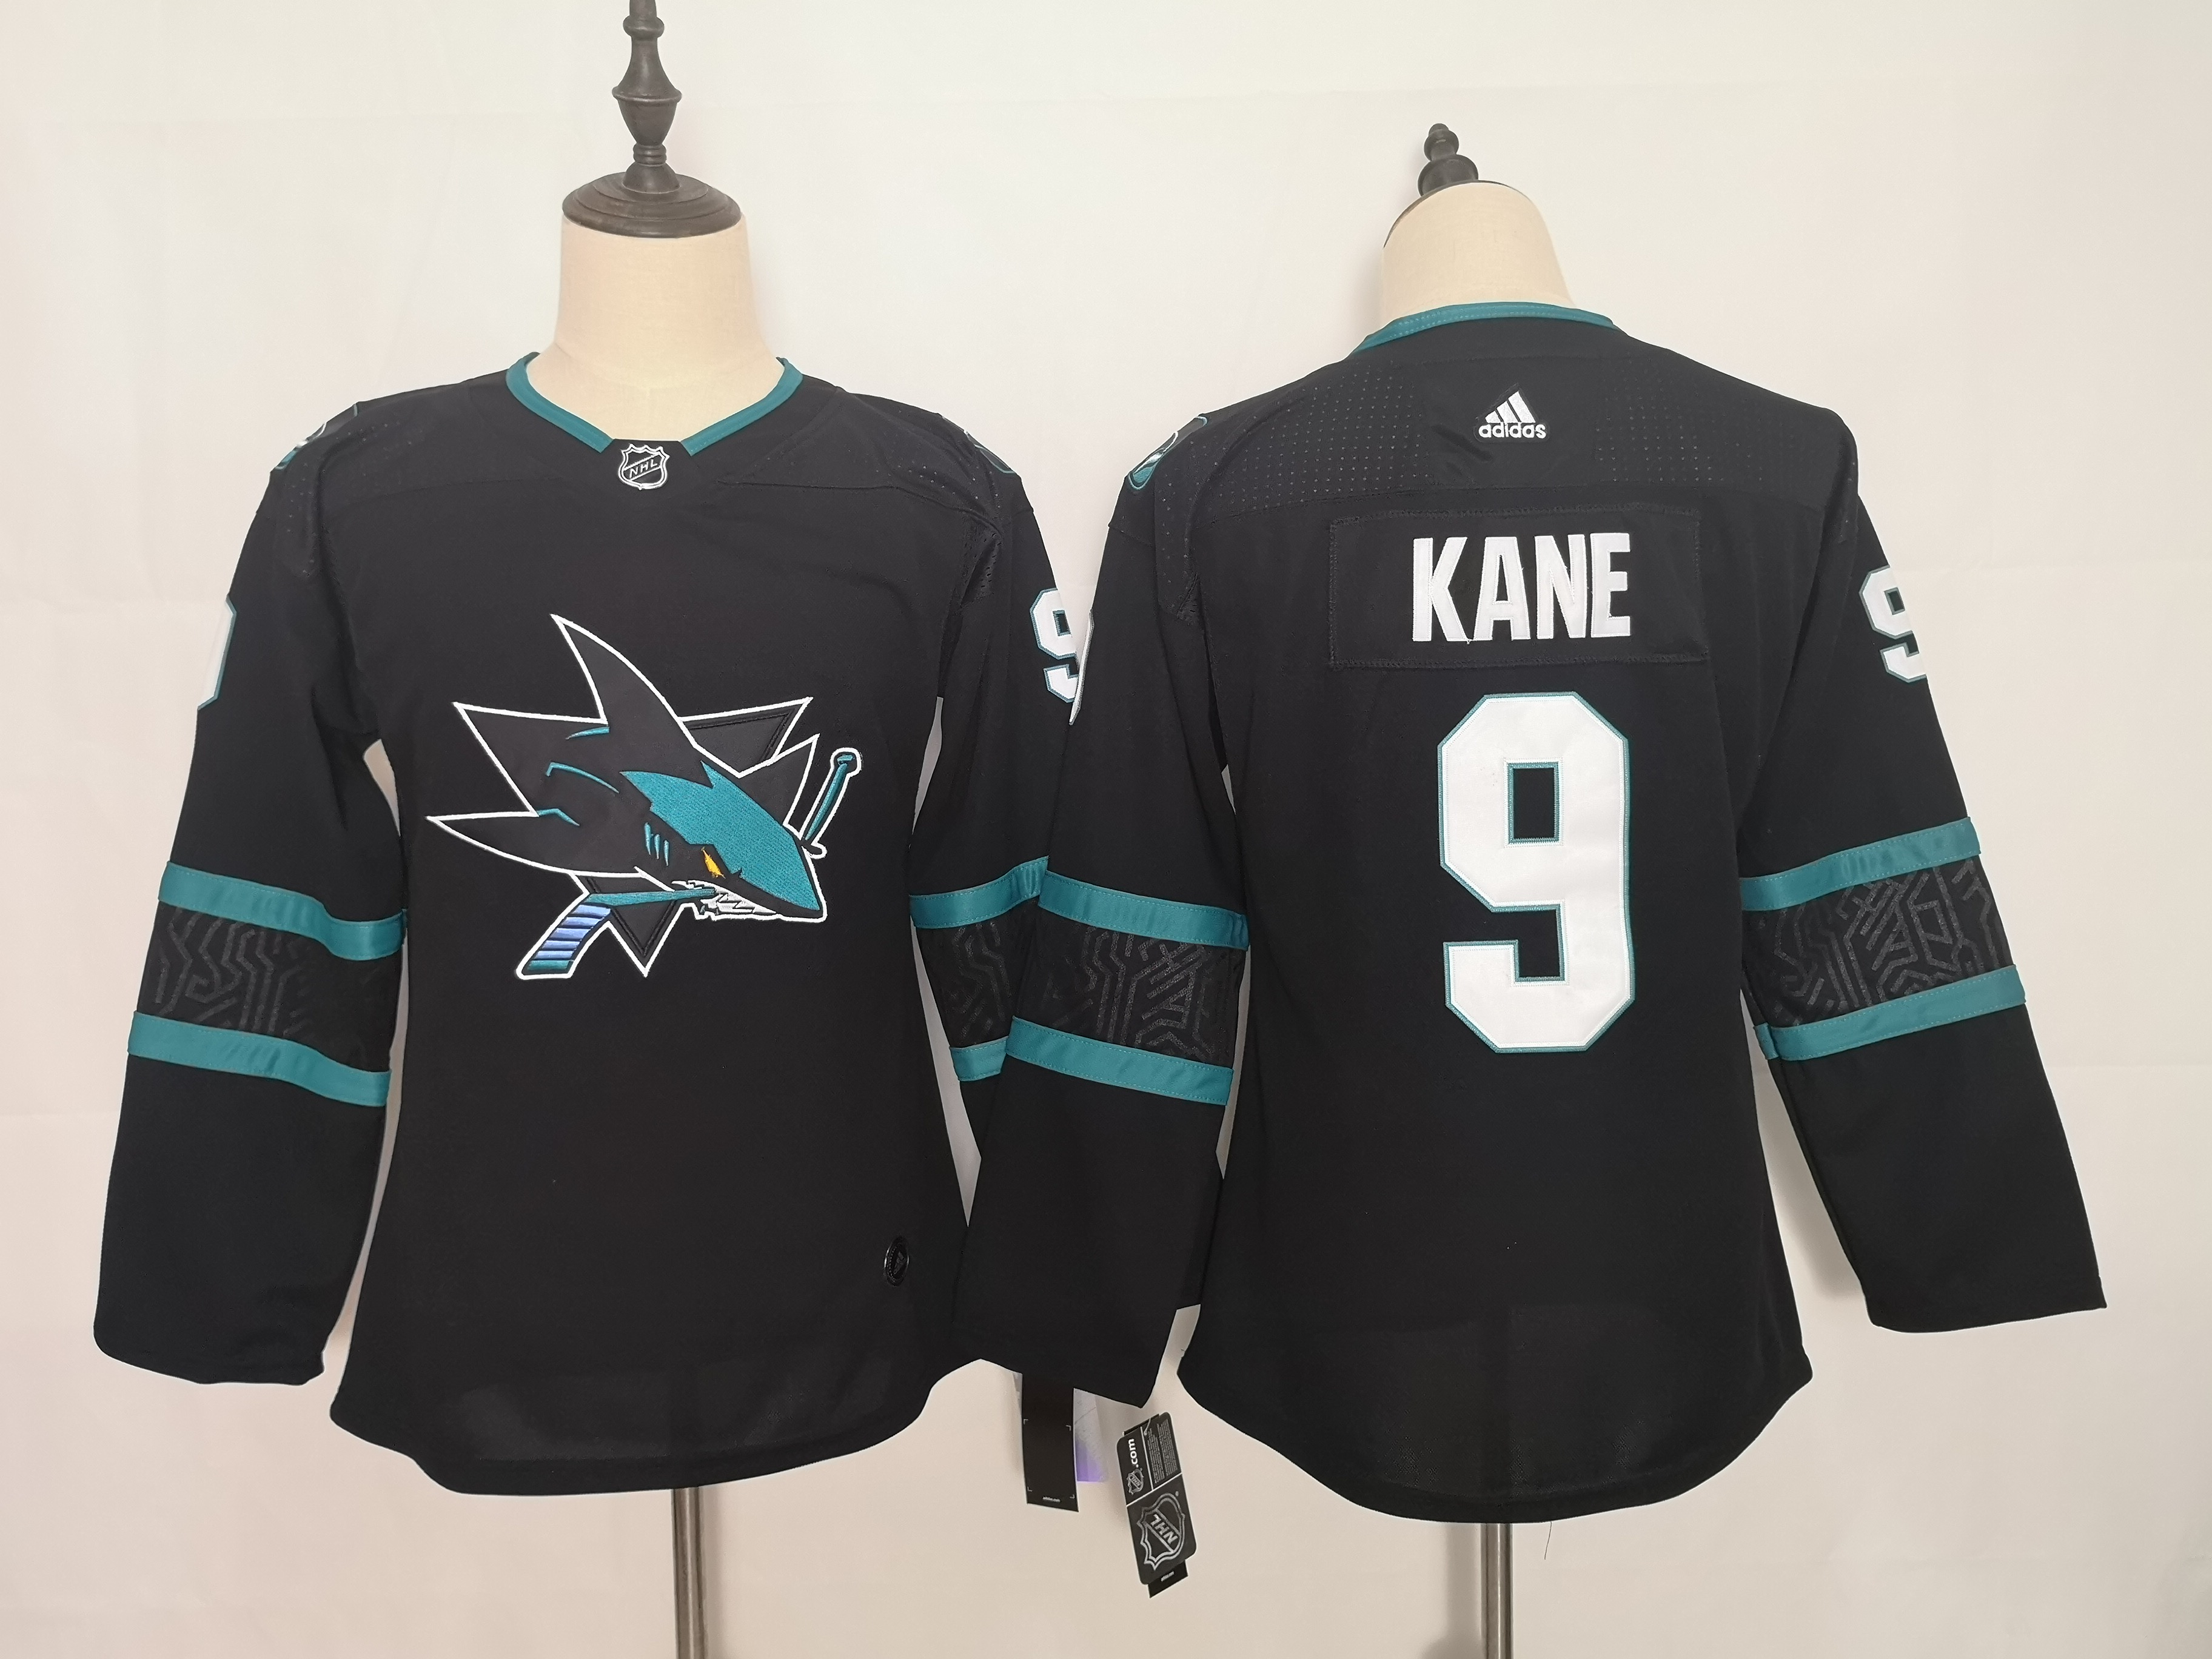 Sharks 9 Evander Kane Black Youth Adidas Jersey